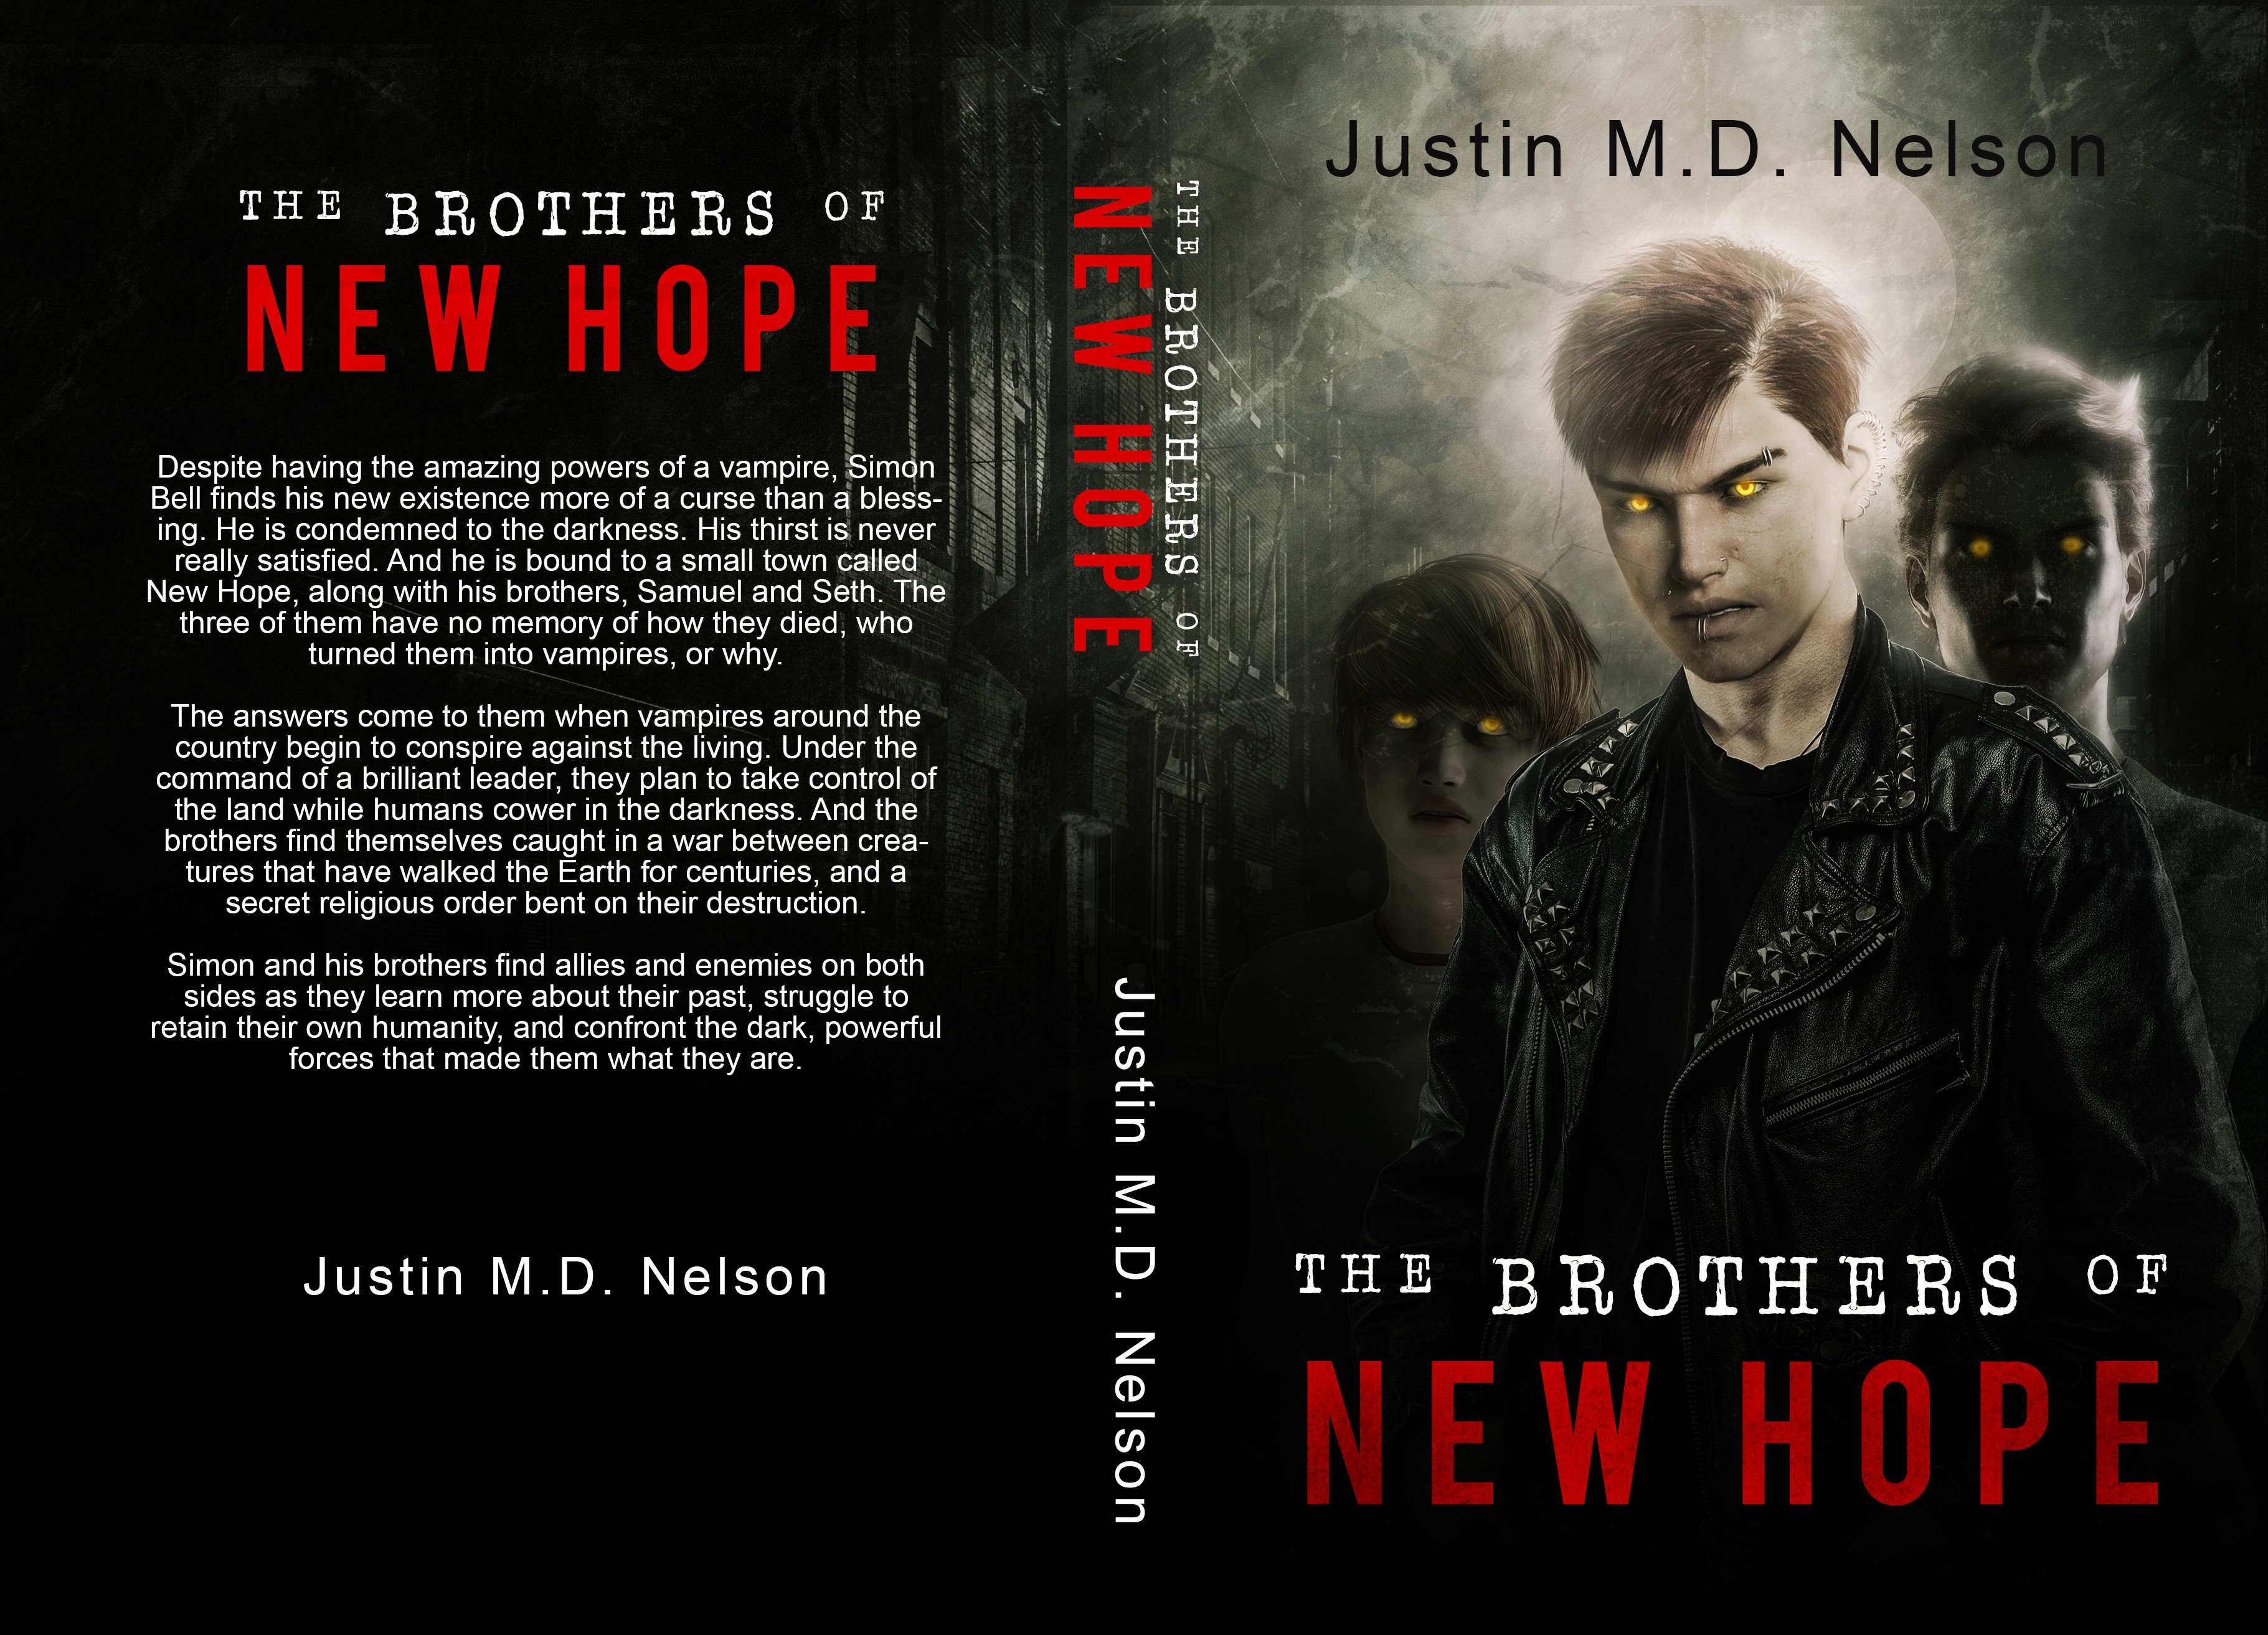 """Create a cover design for """"The Brothers of New Hope"""""""